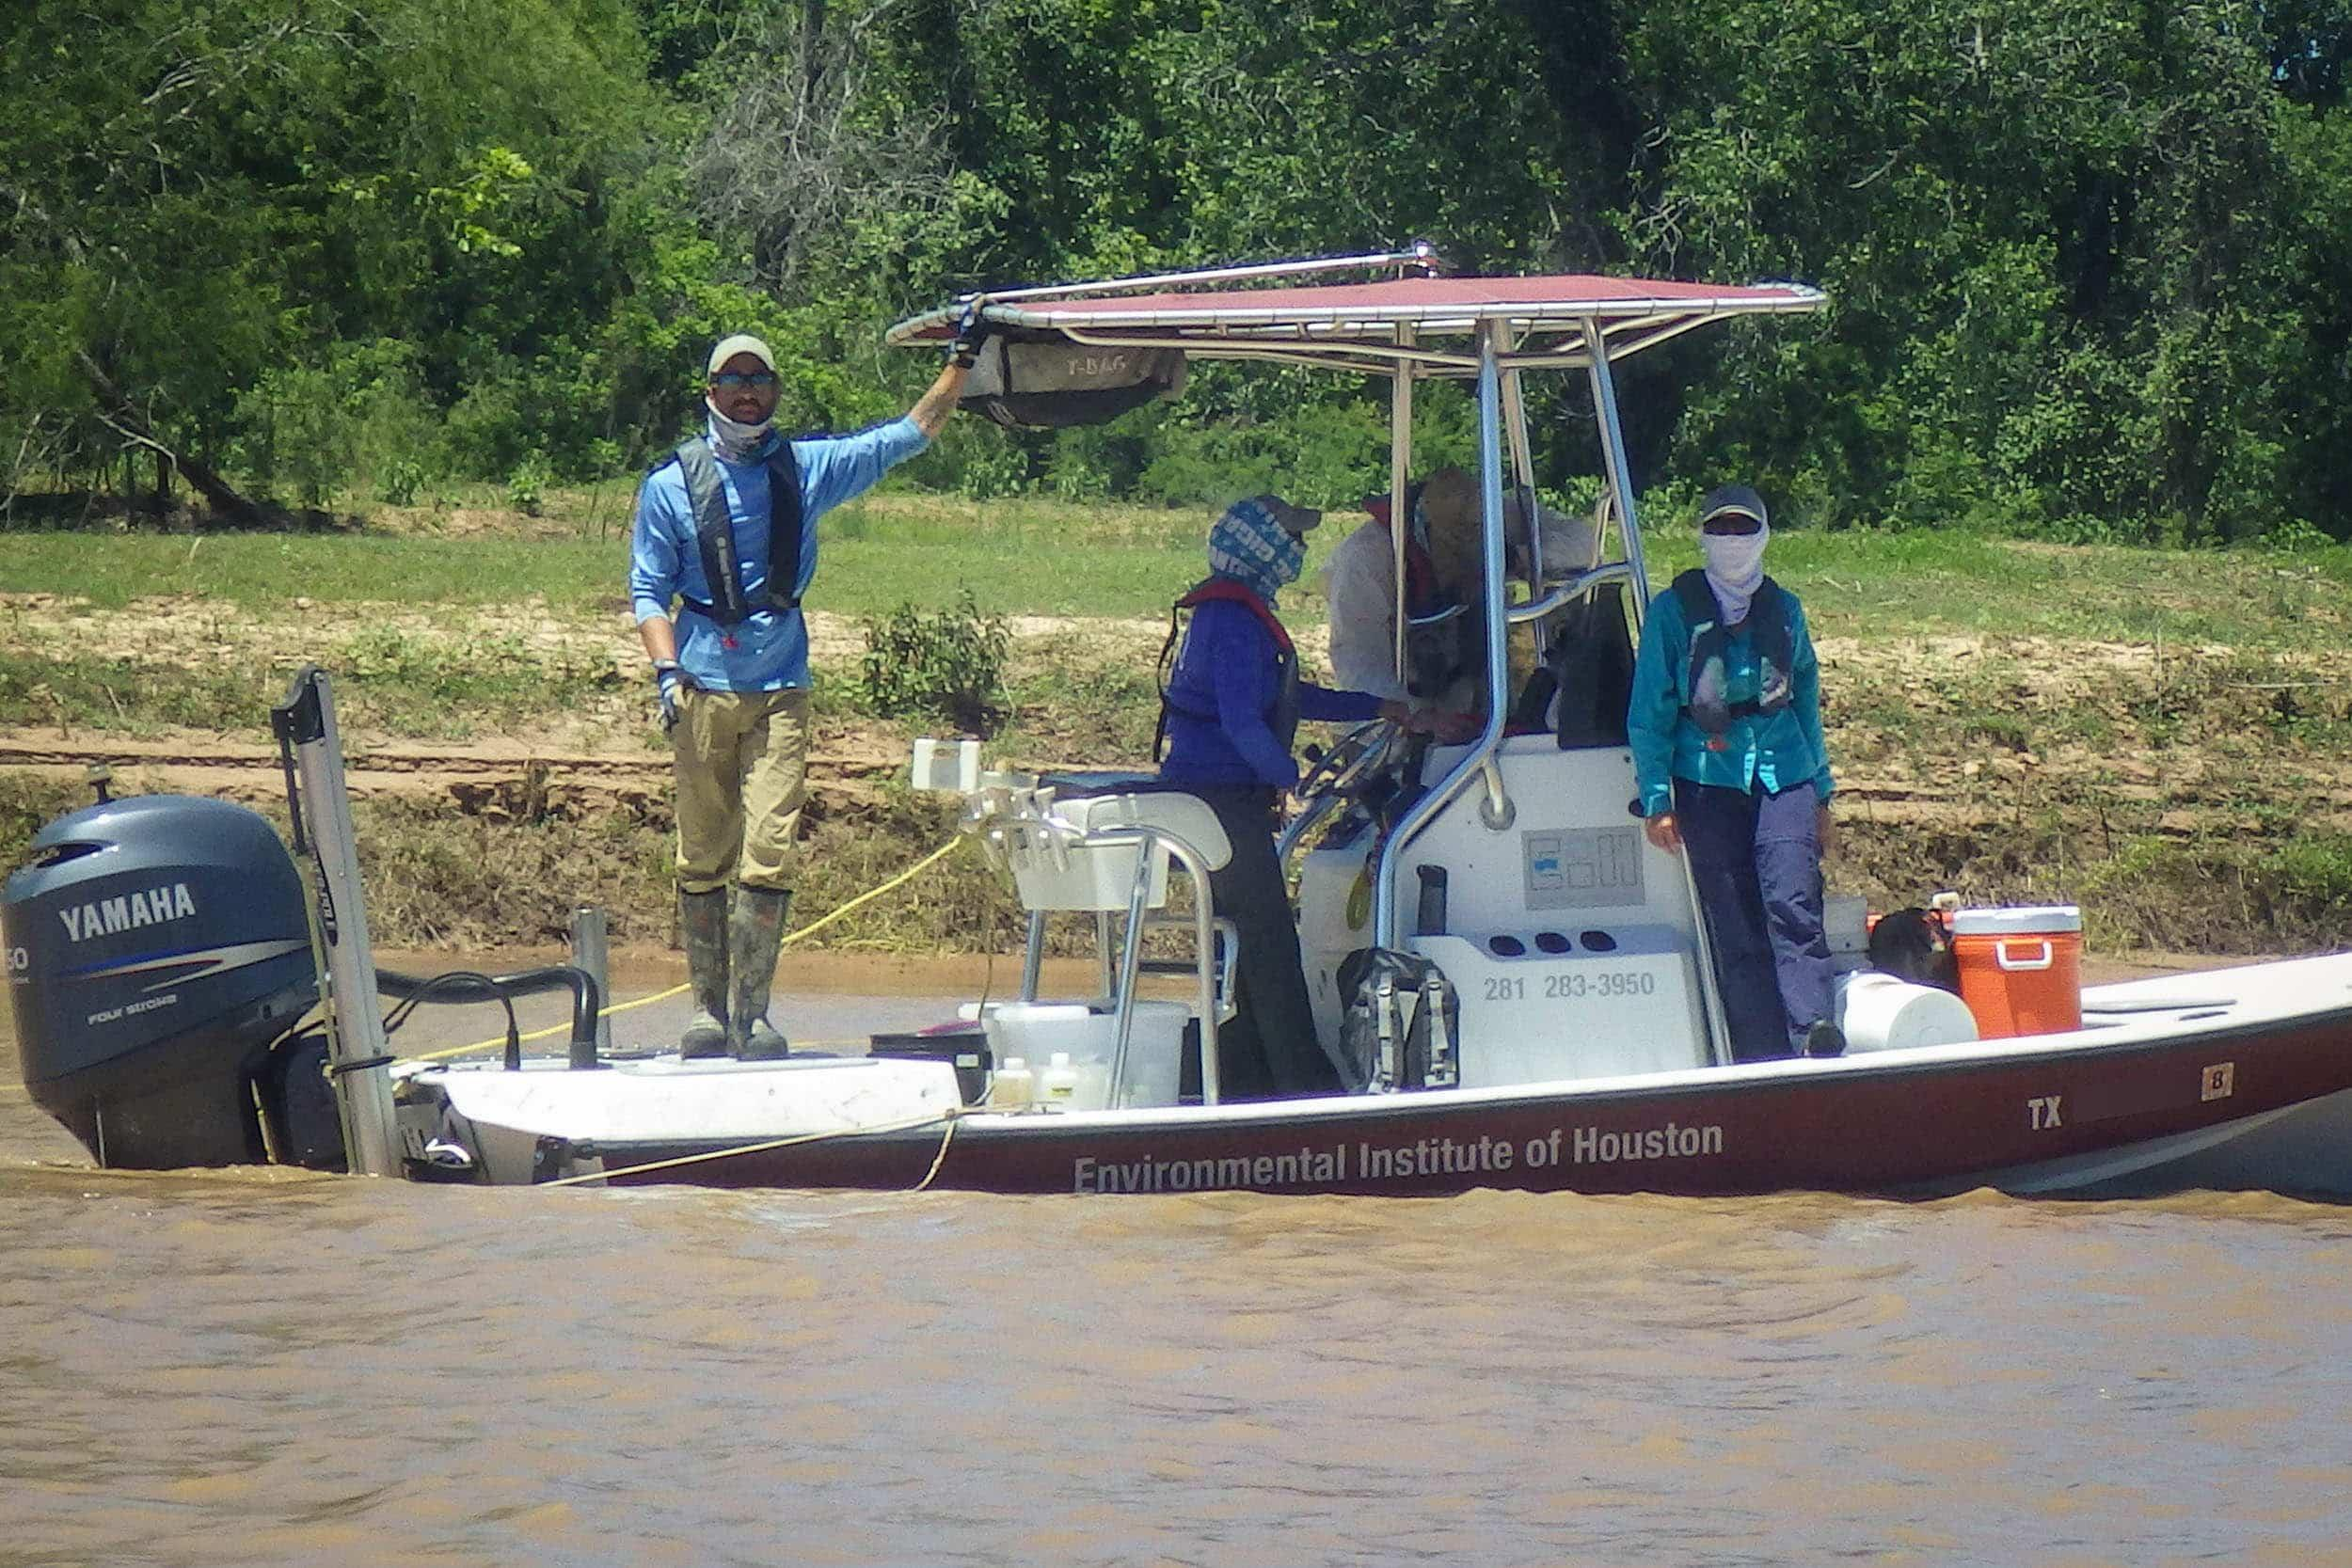 Cory Scanes, Sherah Loe, Tyler Swanson, and Kristi Fazioli run an otter trawl in the Brazos River